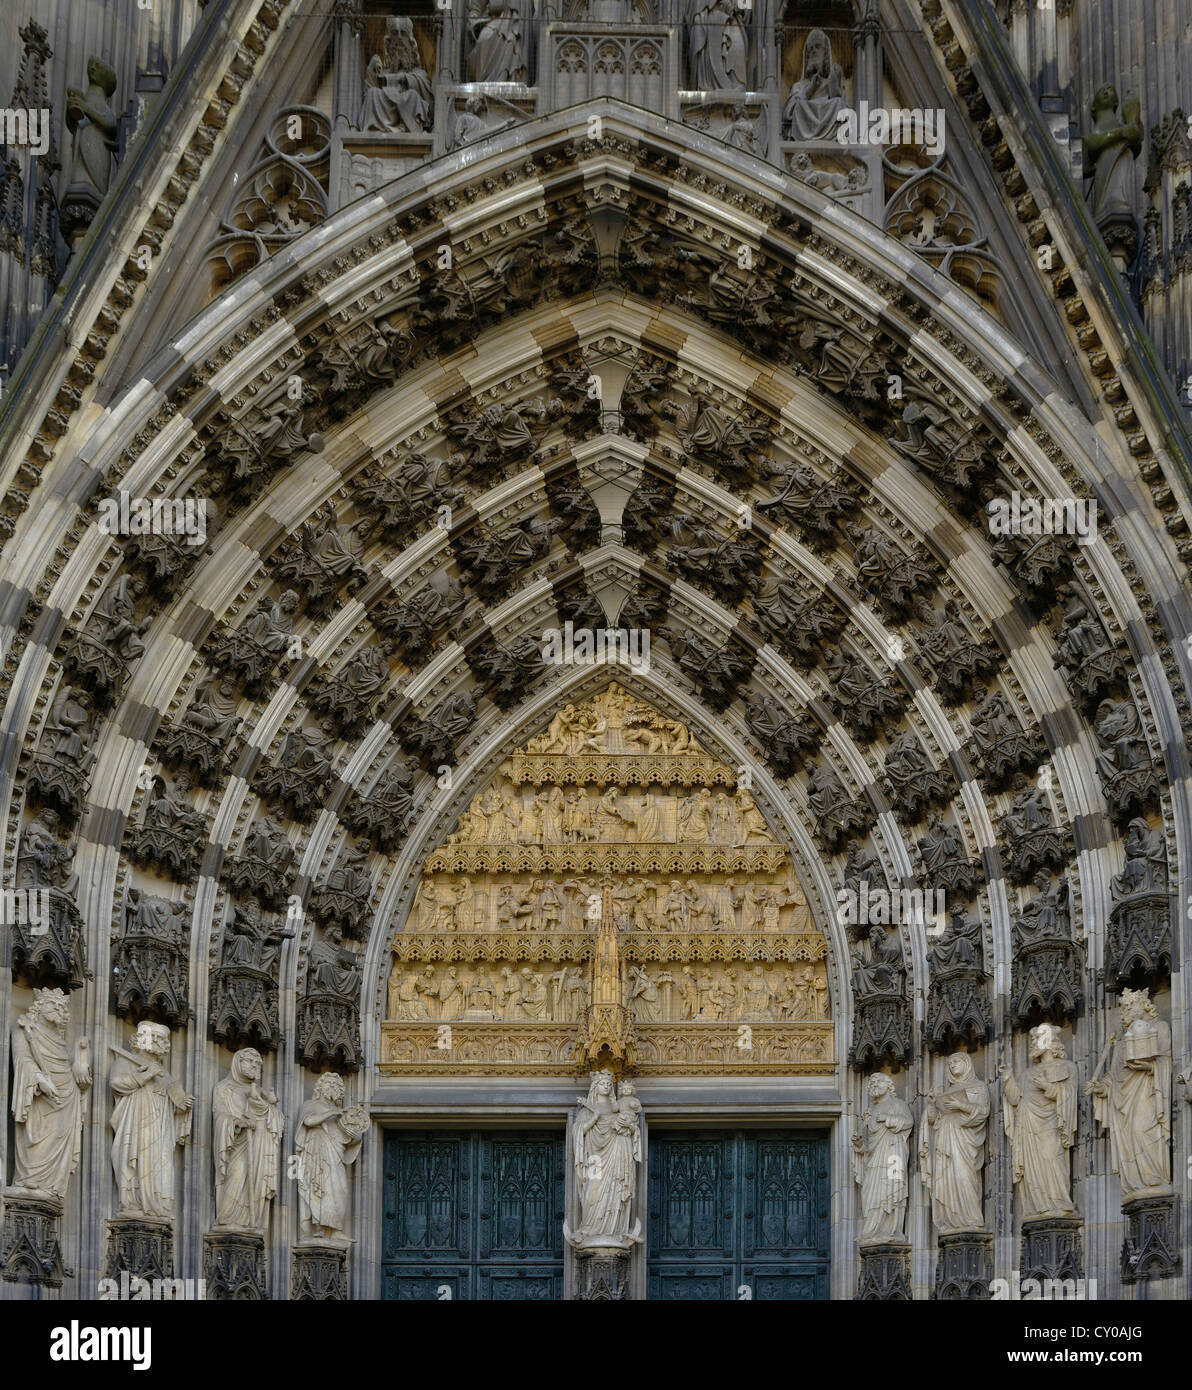 Detailed view of the west entrance, main entrance, Virgin Mary and Christ child at the centre, Cologne Cathedral - Stock Image